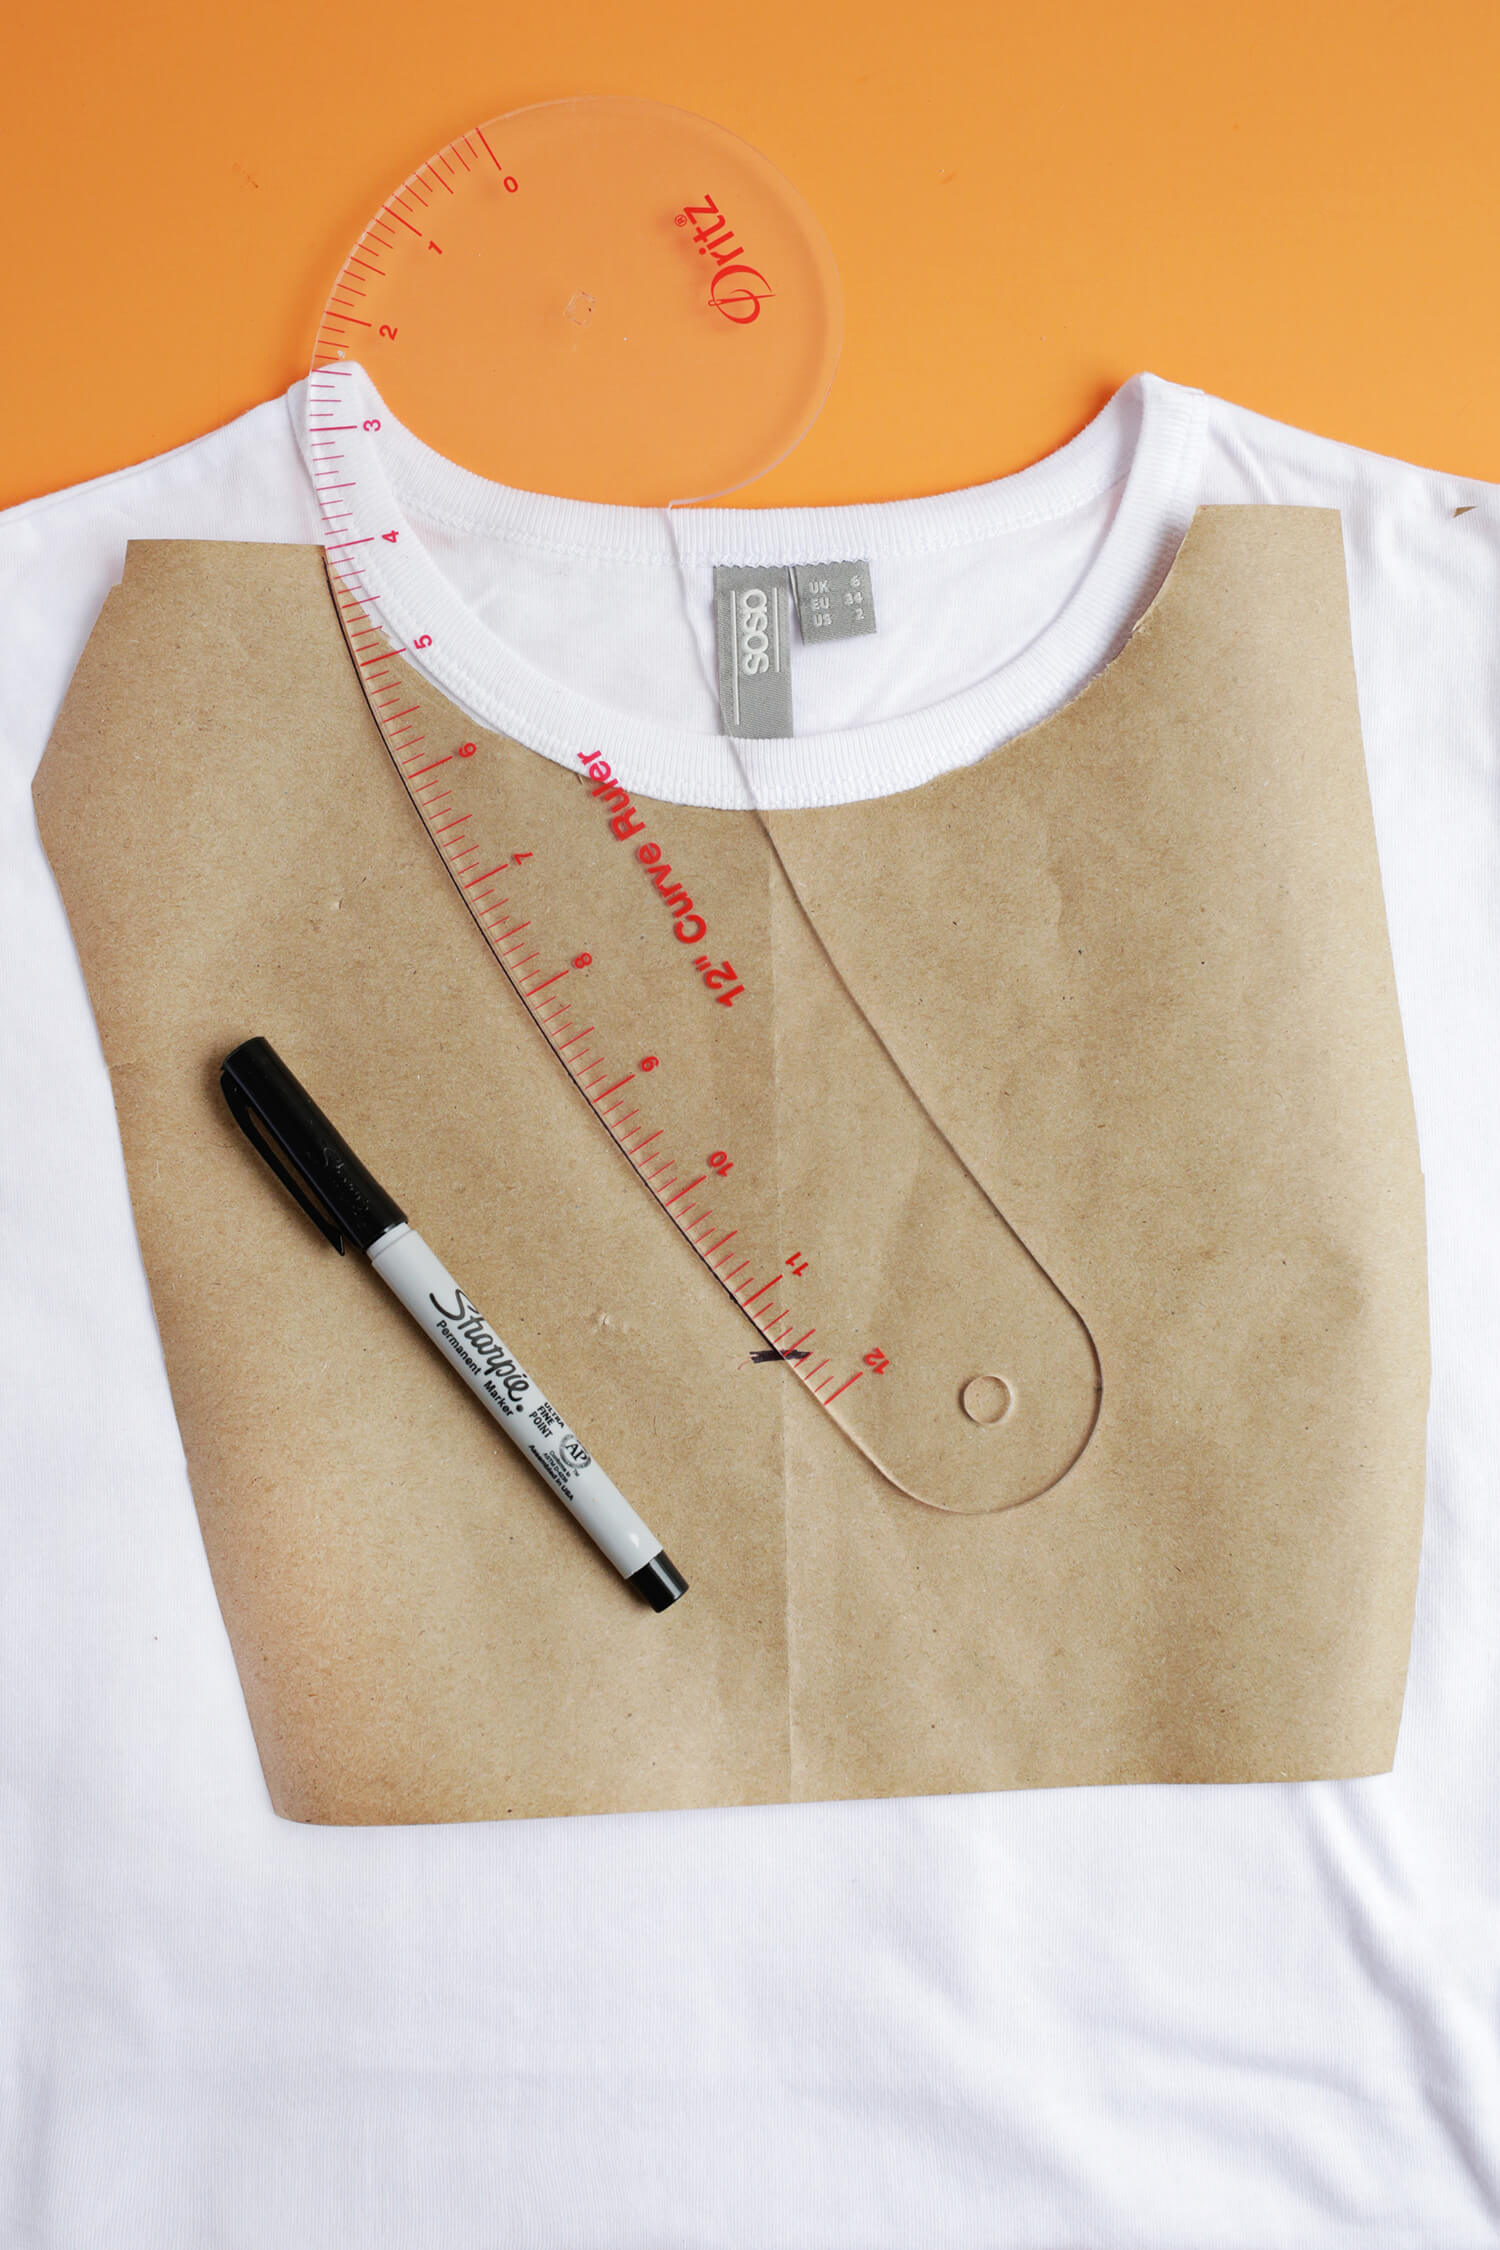 How to make a choker out of a shirt